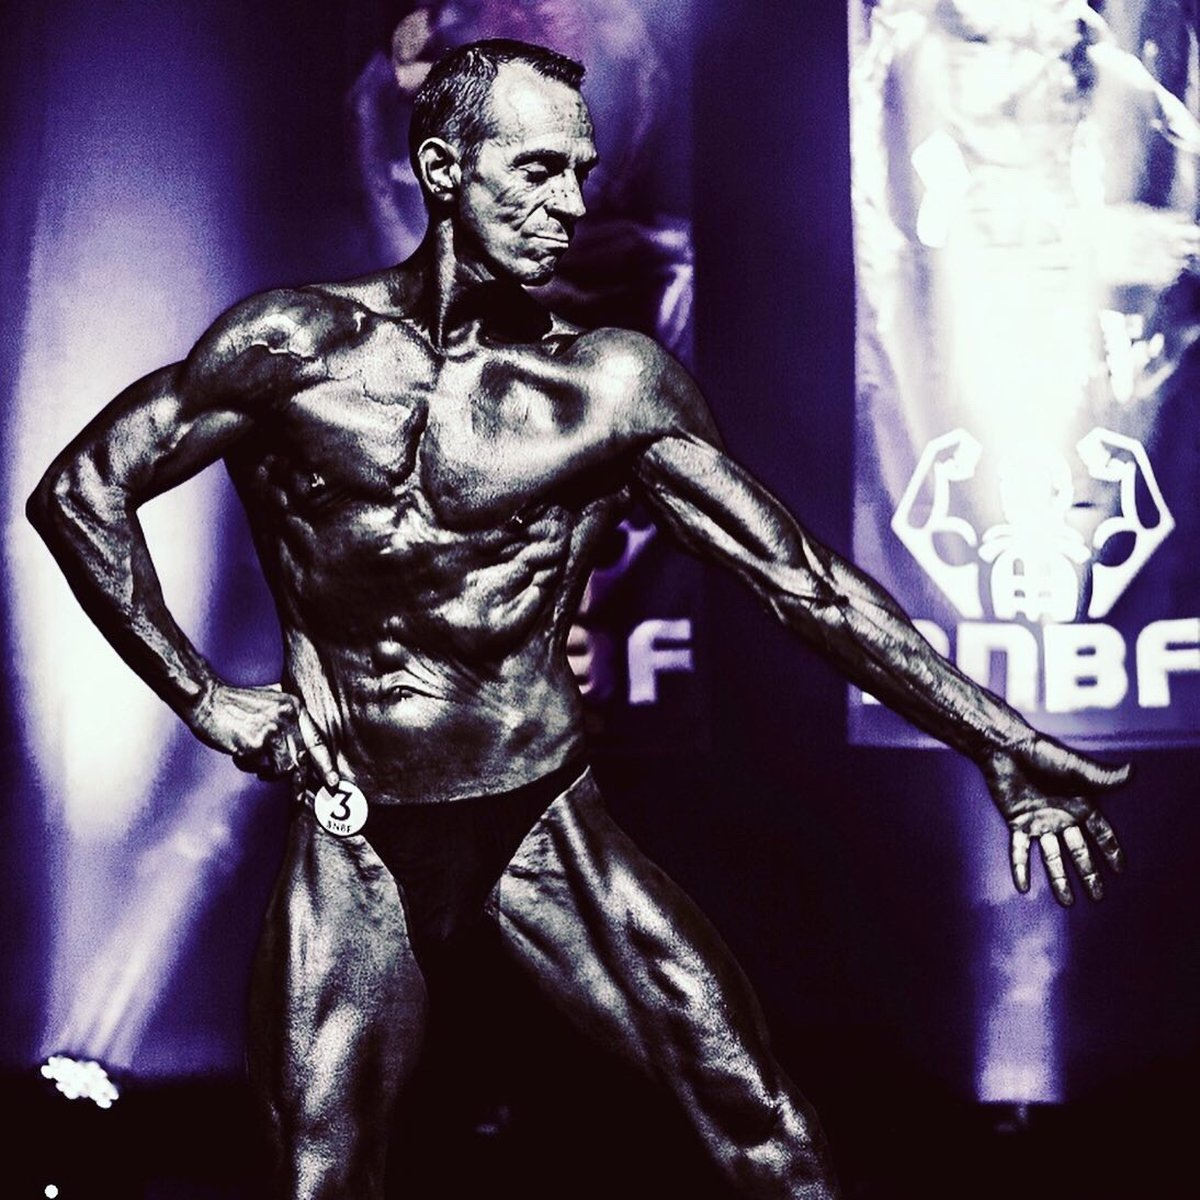 image of image: 30 of 32Tim poses at the 2019 BNBF Central Contest on his way to collect 3<sup>rd</sup> spot in the Over 50s category.